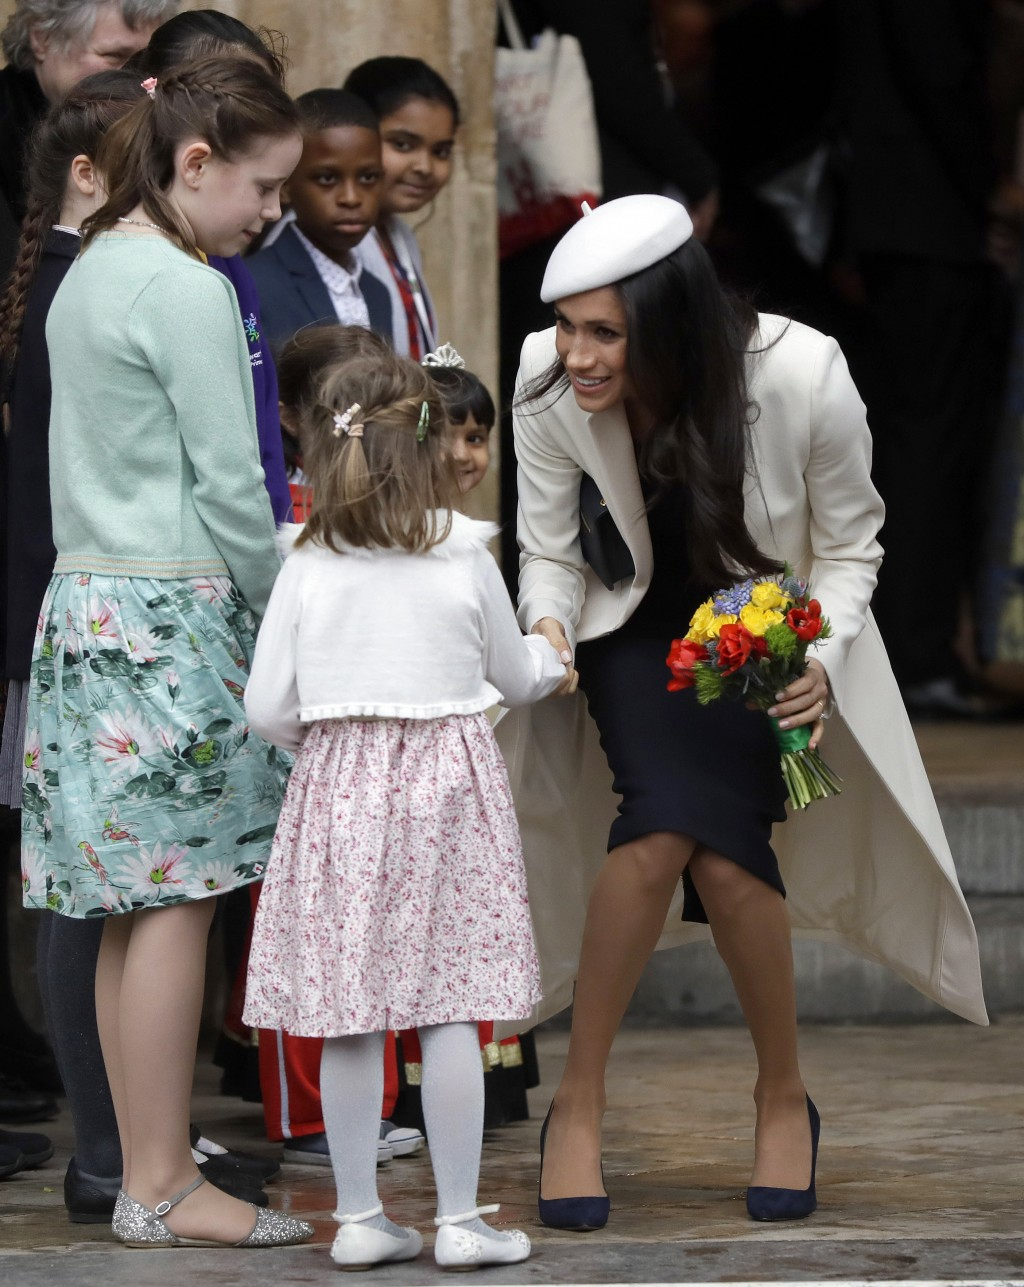 Meghan Markle receives flowers as she leaves after attending the Commonwealth Service at Westminster Abbey in London, Monday, March 12, 2018. Organise